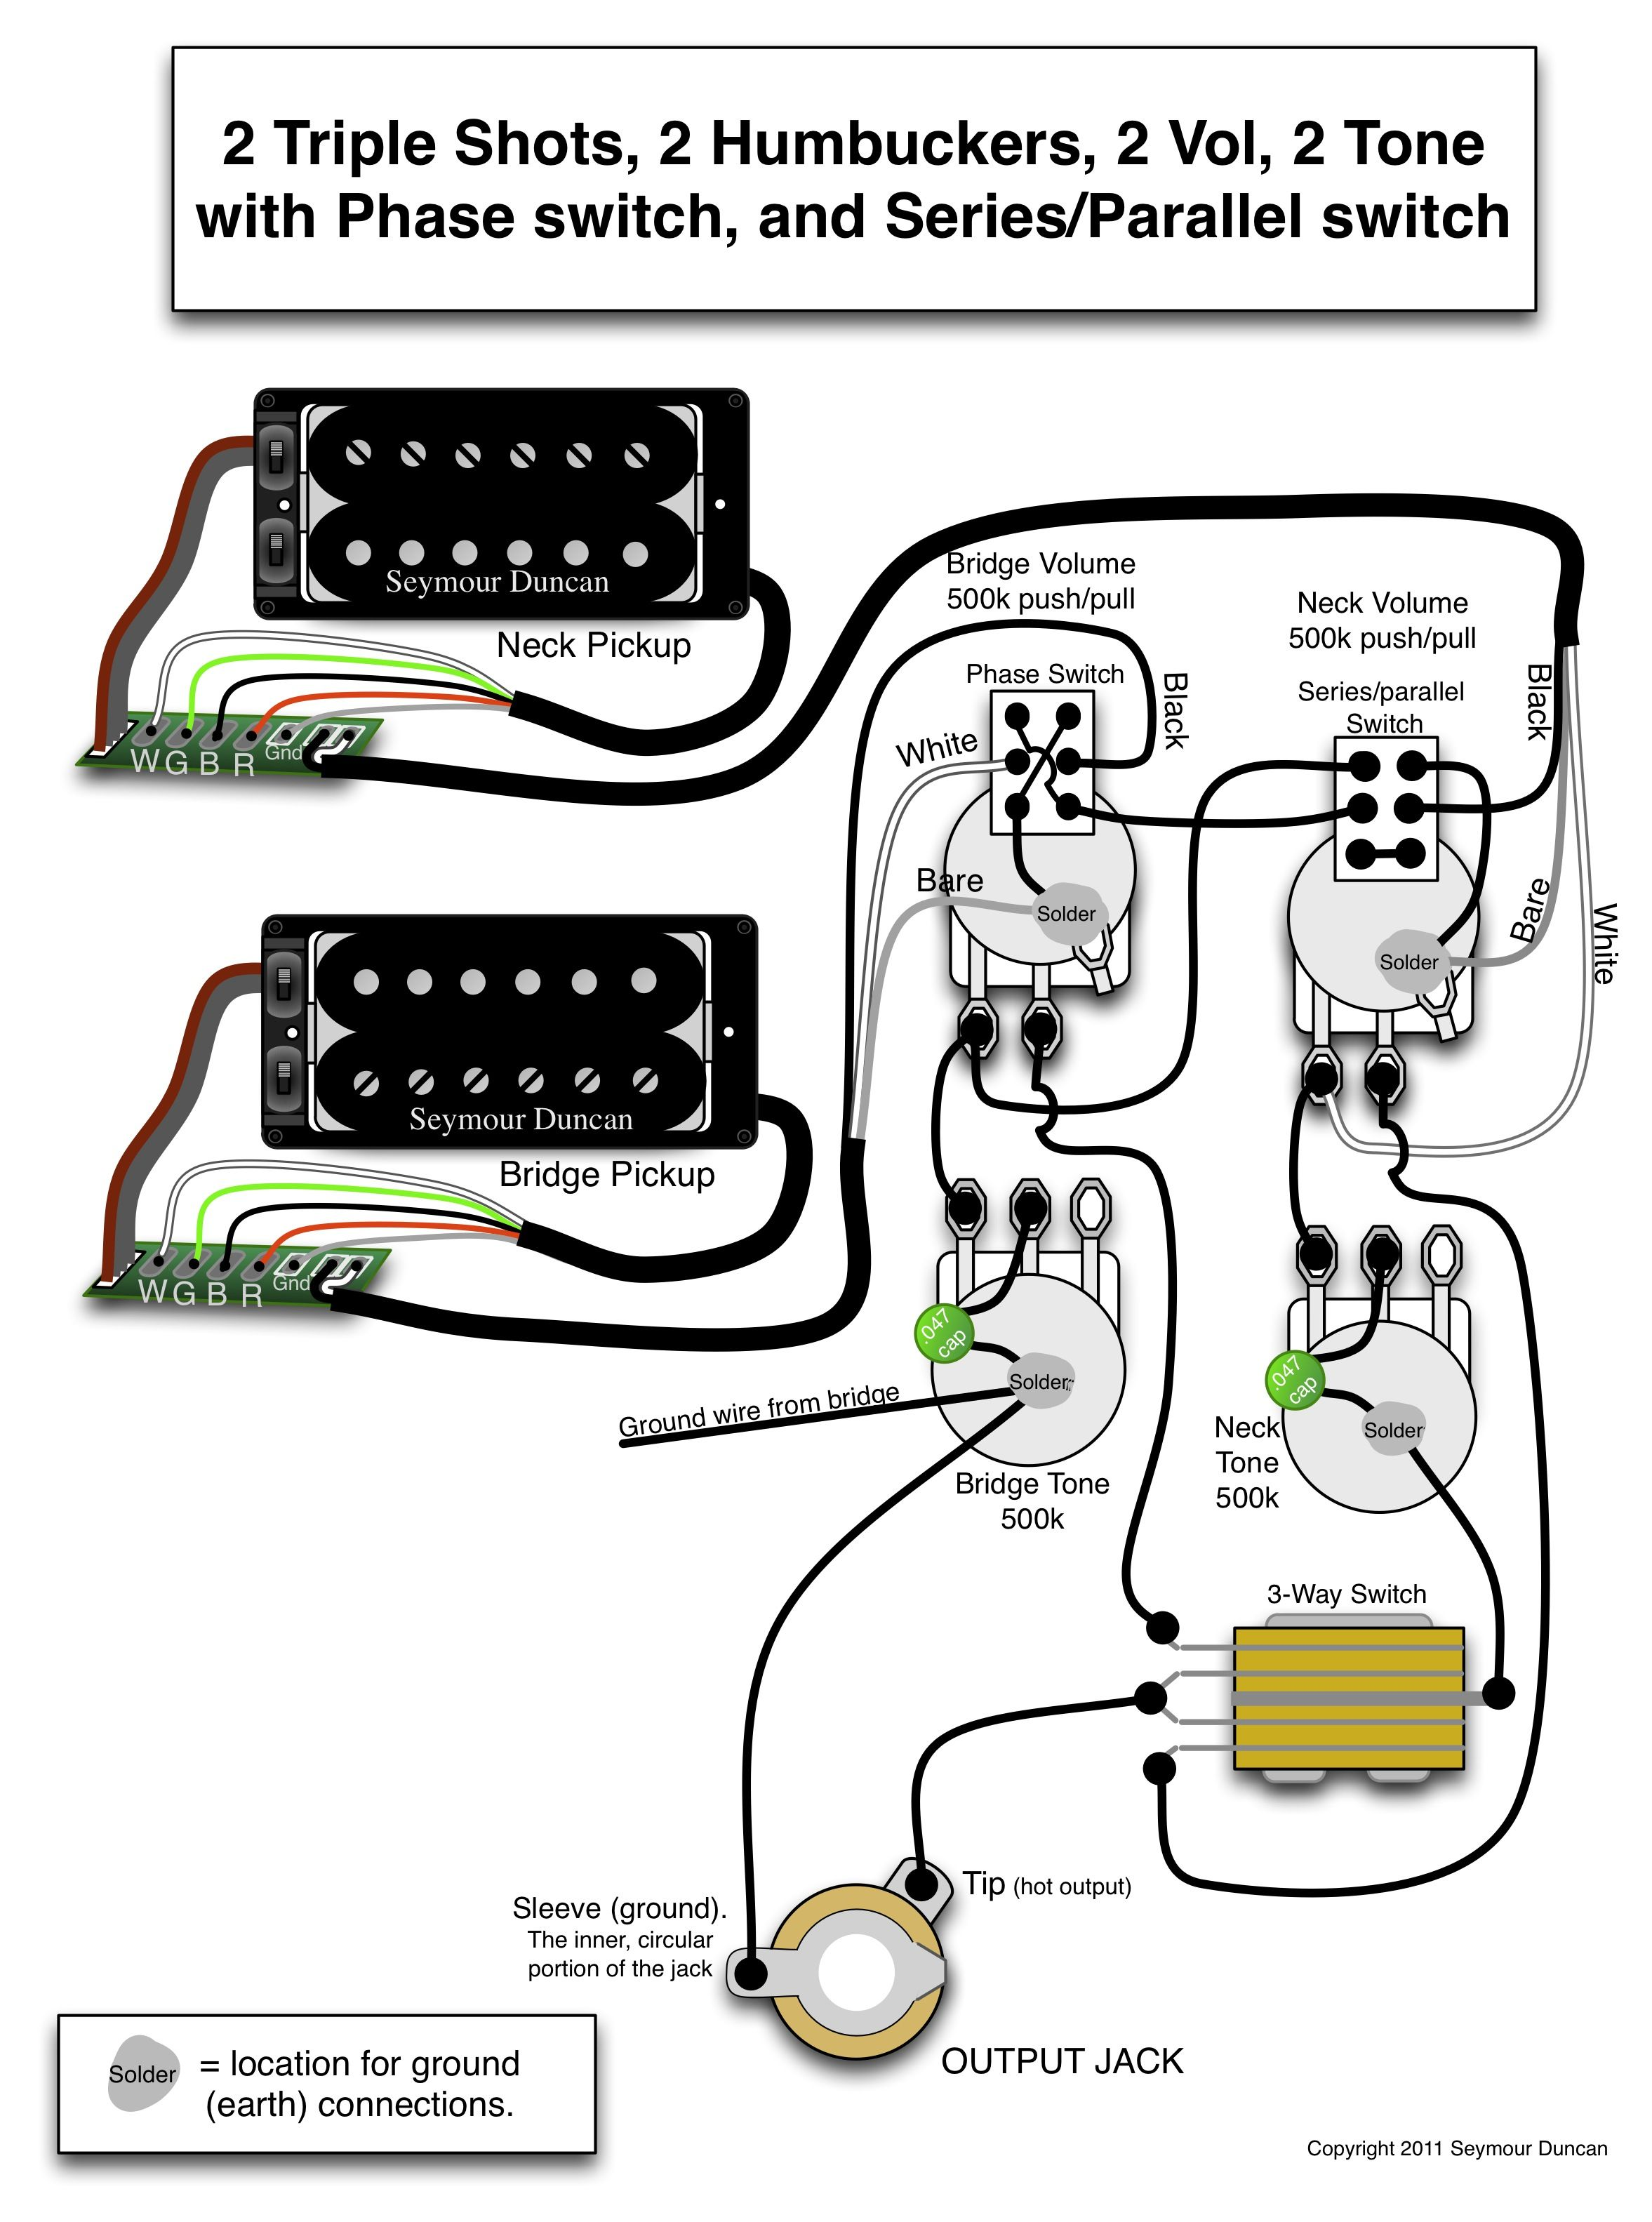 bartolini pickups wiring diagram two humbucking pickups wiring diagram seymour duncan wiring diagram - 2 triple shots, 2 ...